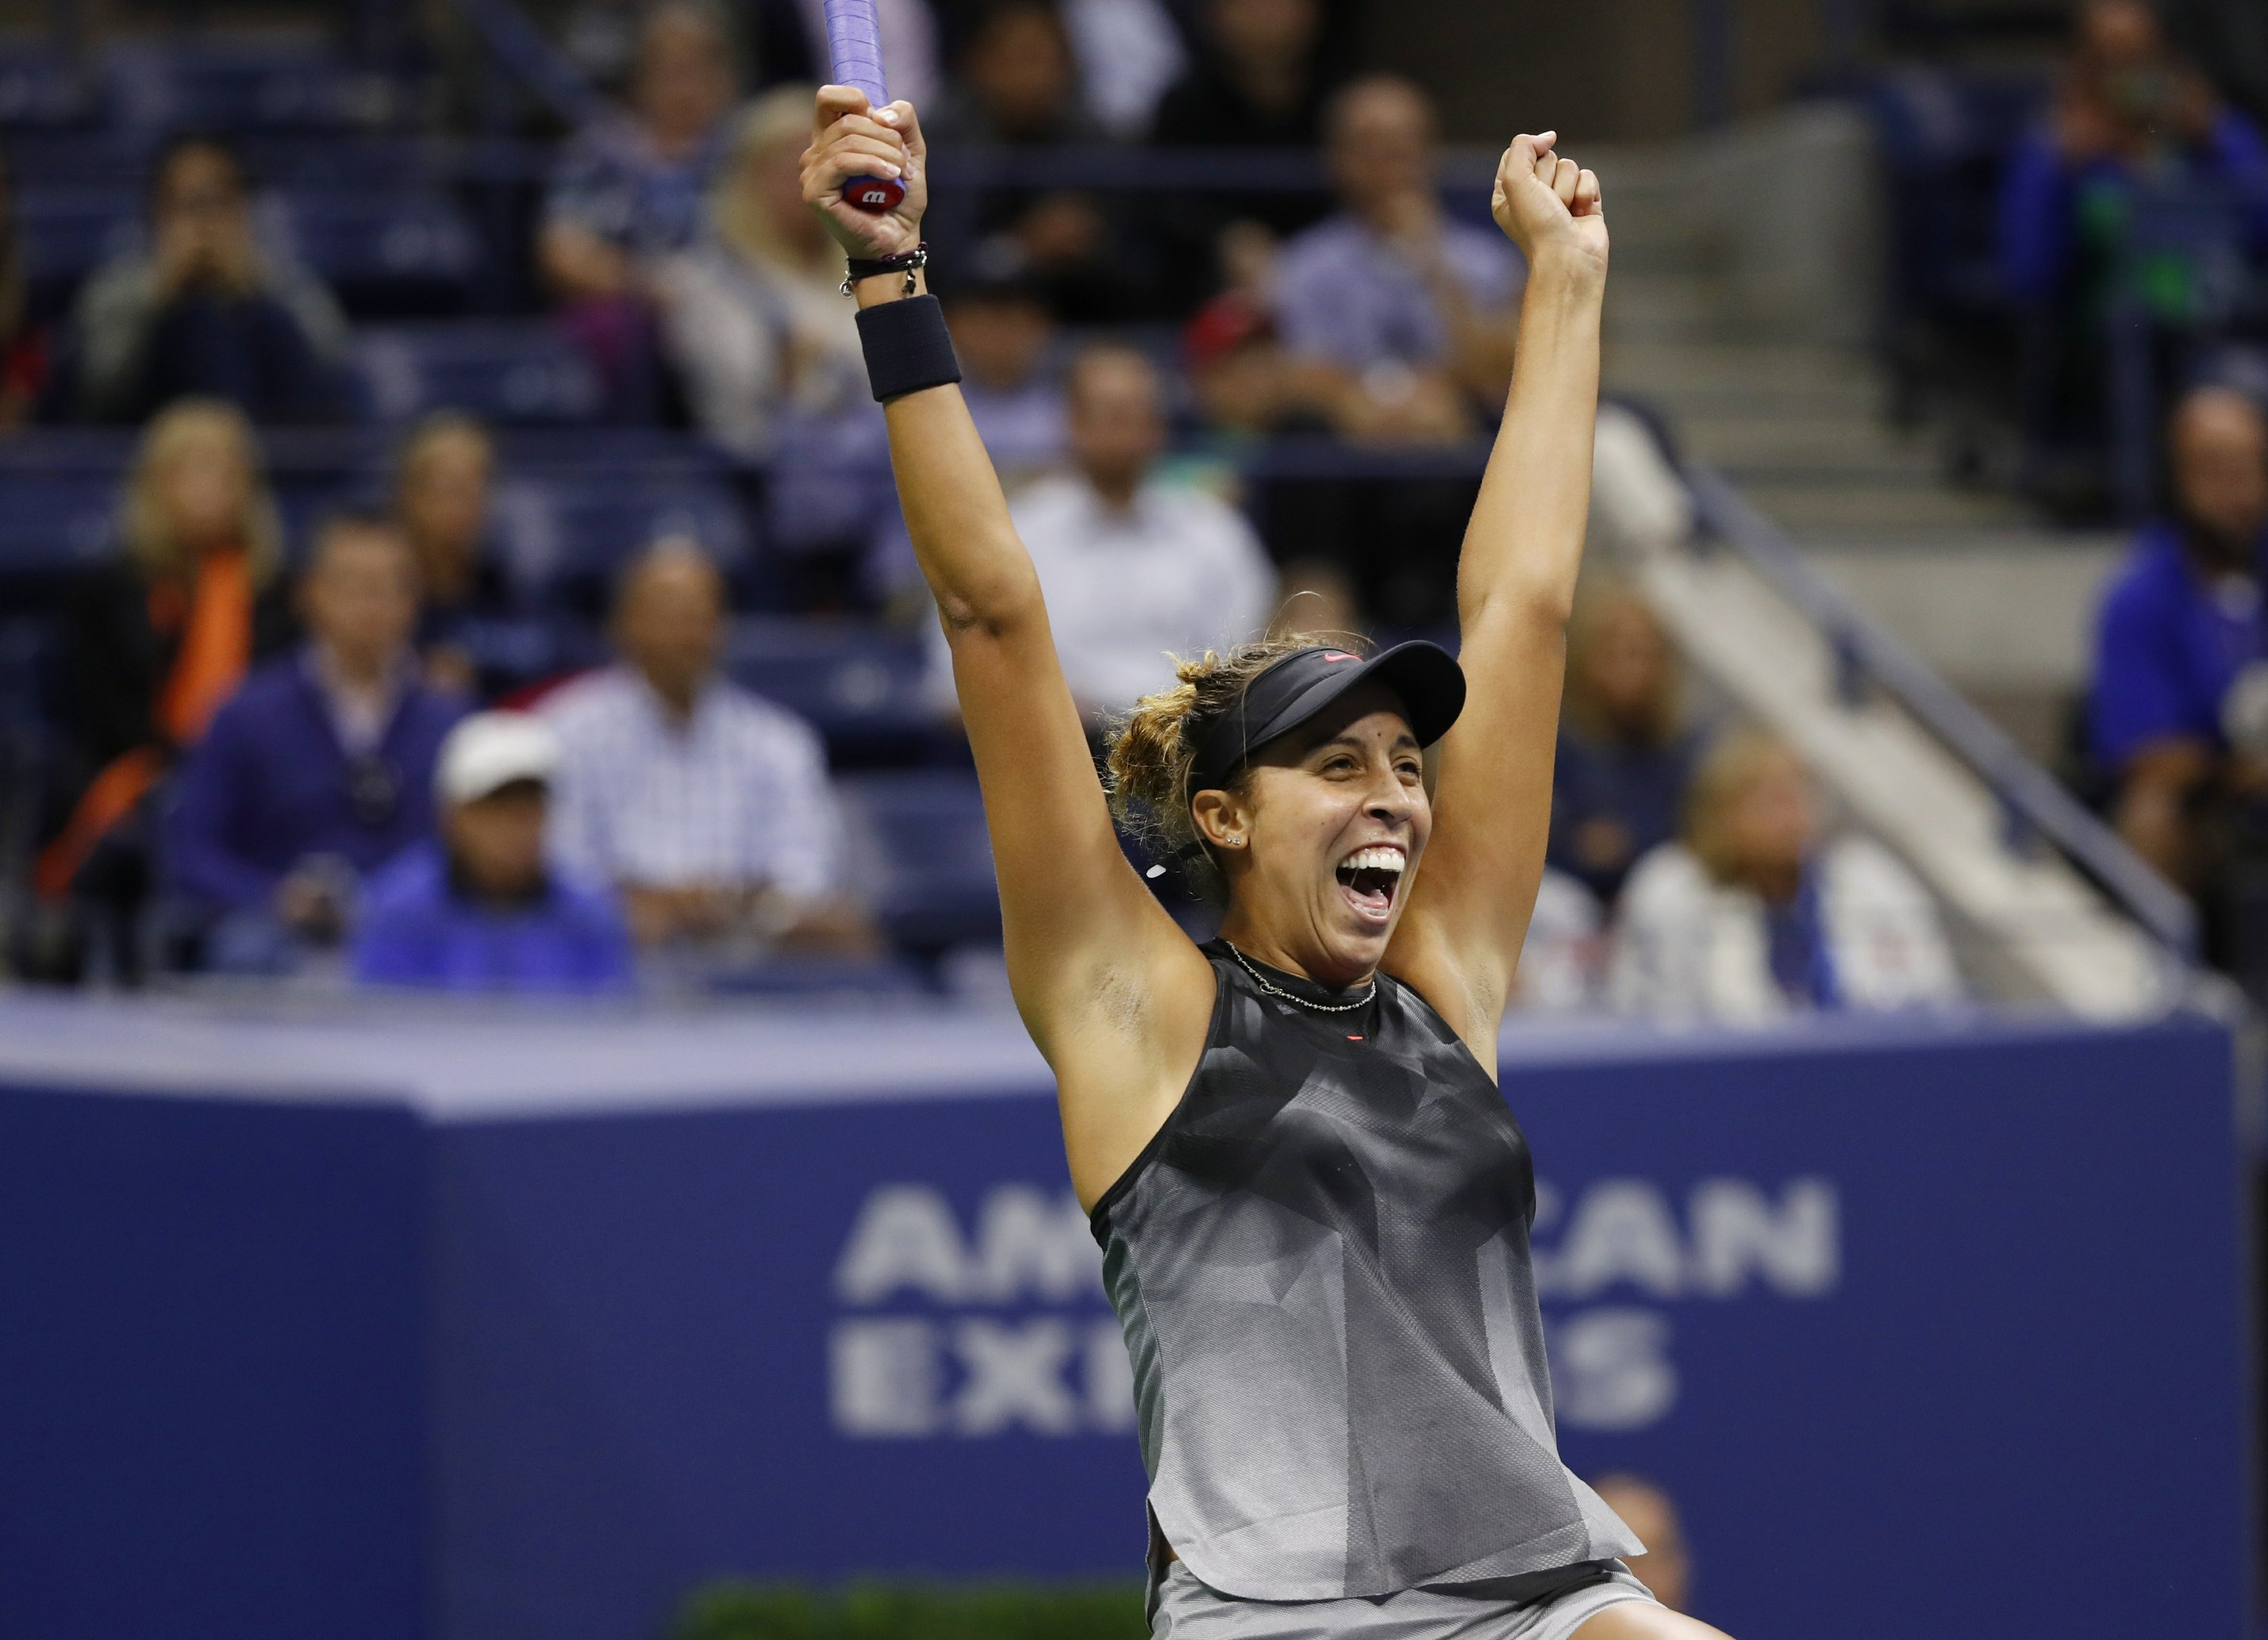 Stephens tops Williams; faces Keys in all-American US Open F